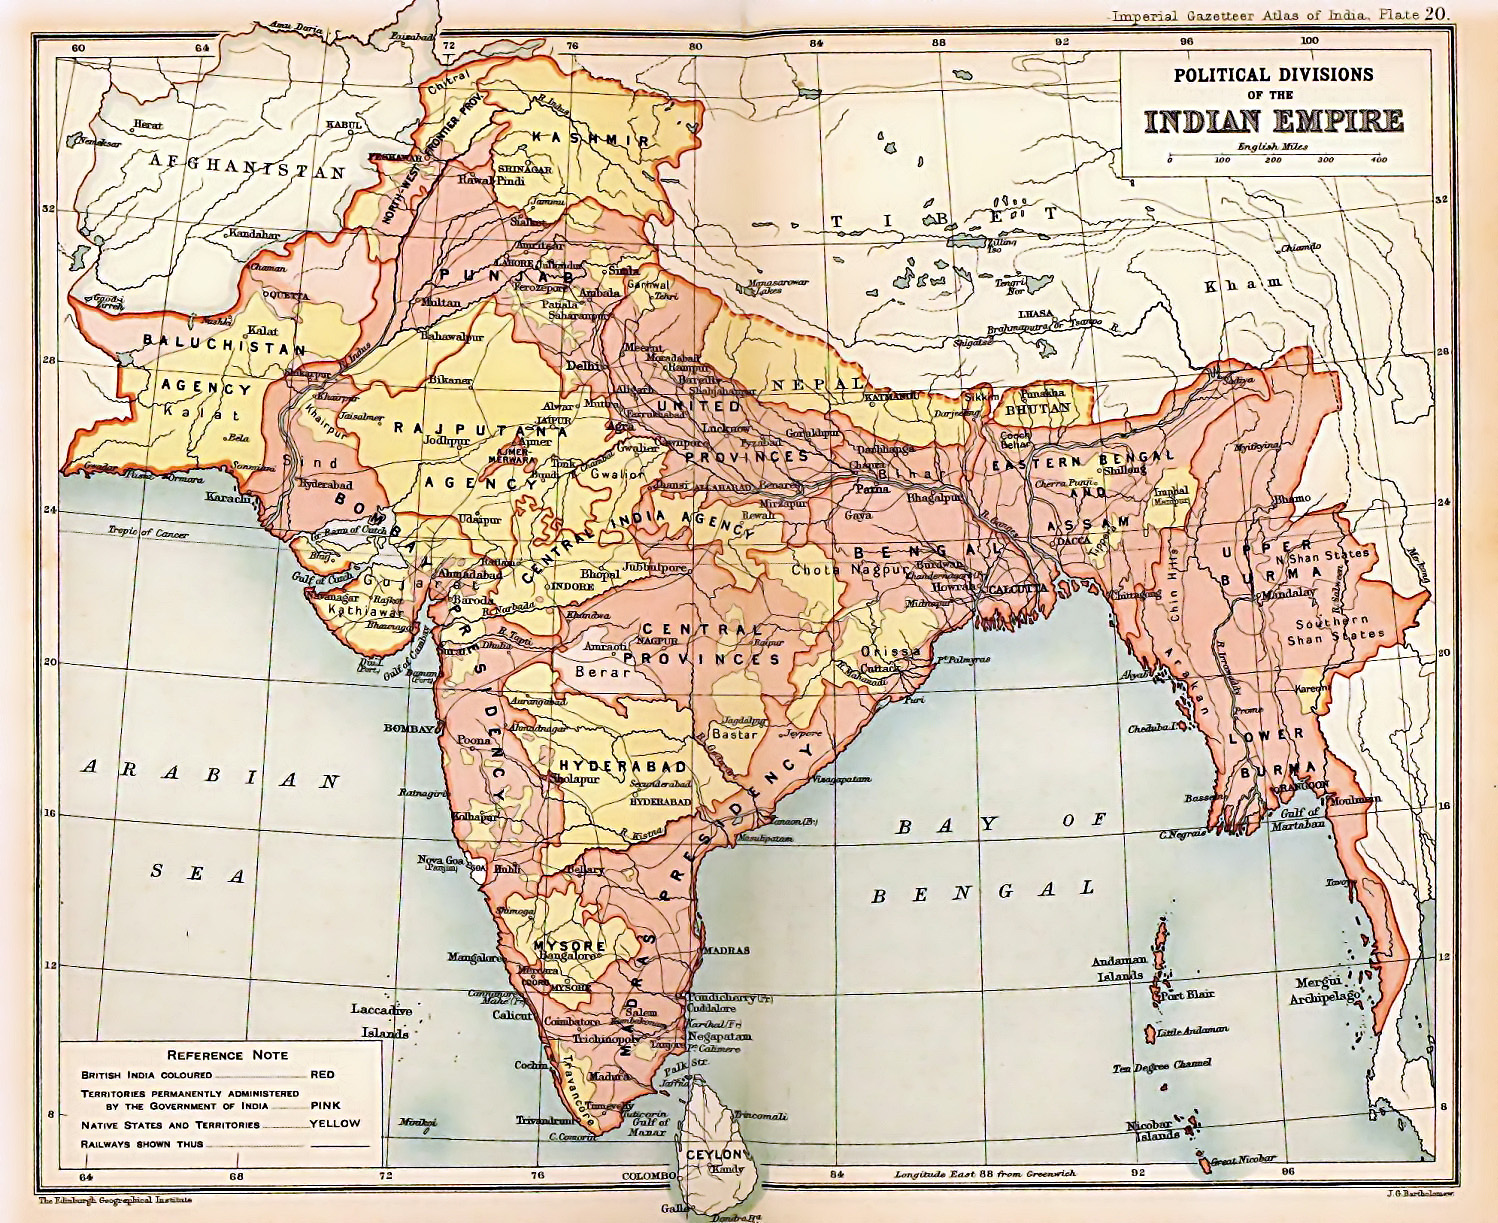 the british indian empire from the 1909 edition of the imperial gazetteer of india areas directly governed by the british are shaded pink the princely